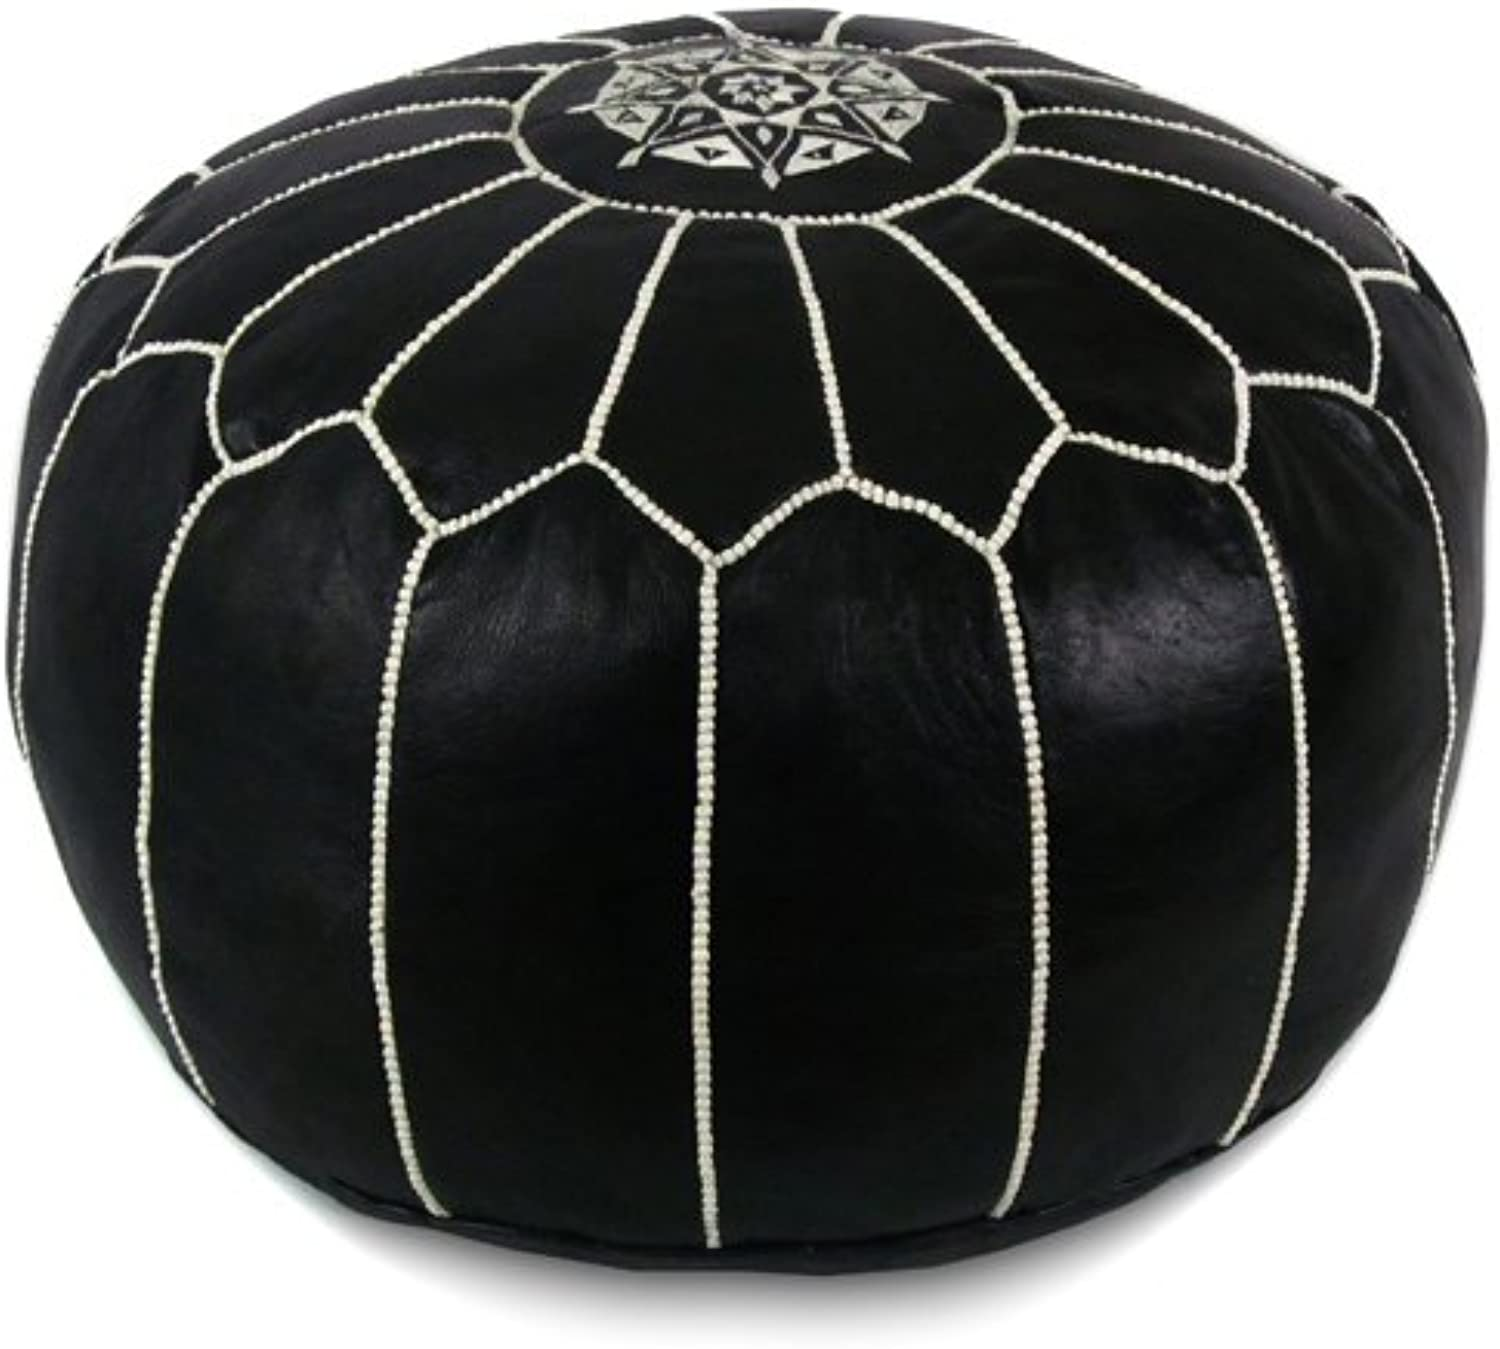 Ikram Design Mgoldccan Pouf with White Stitches, 20  by 13 , Black